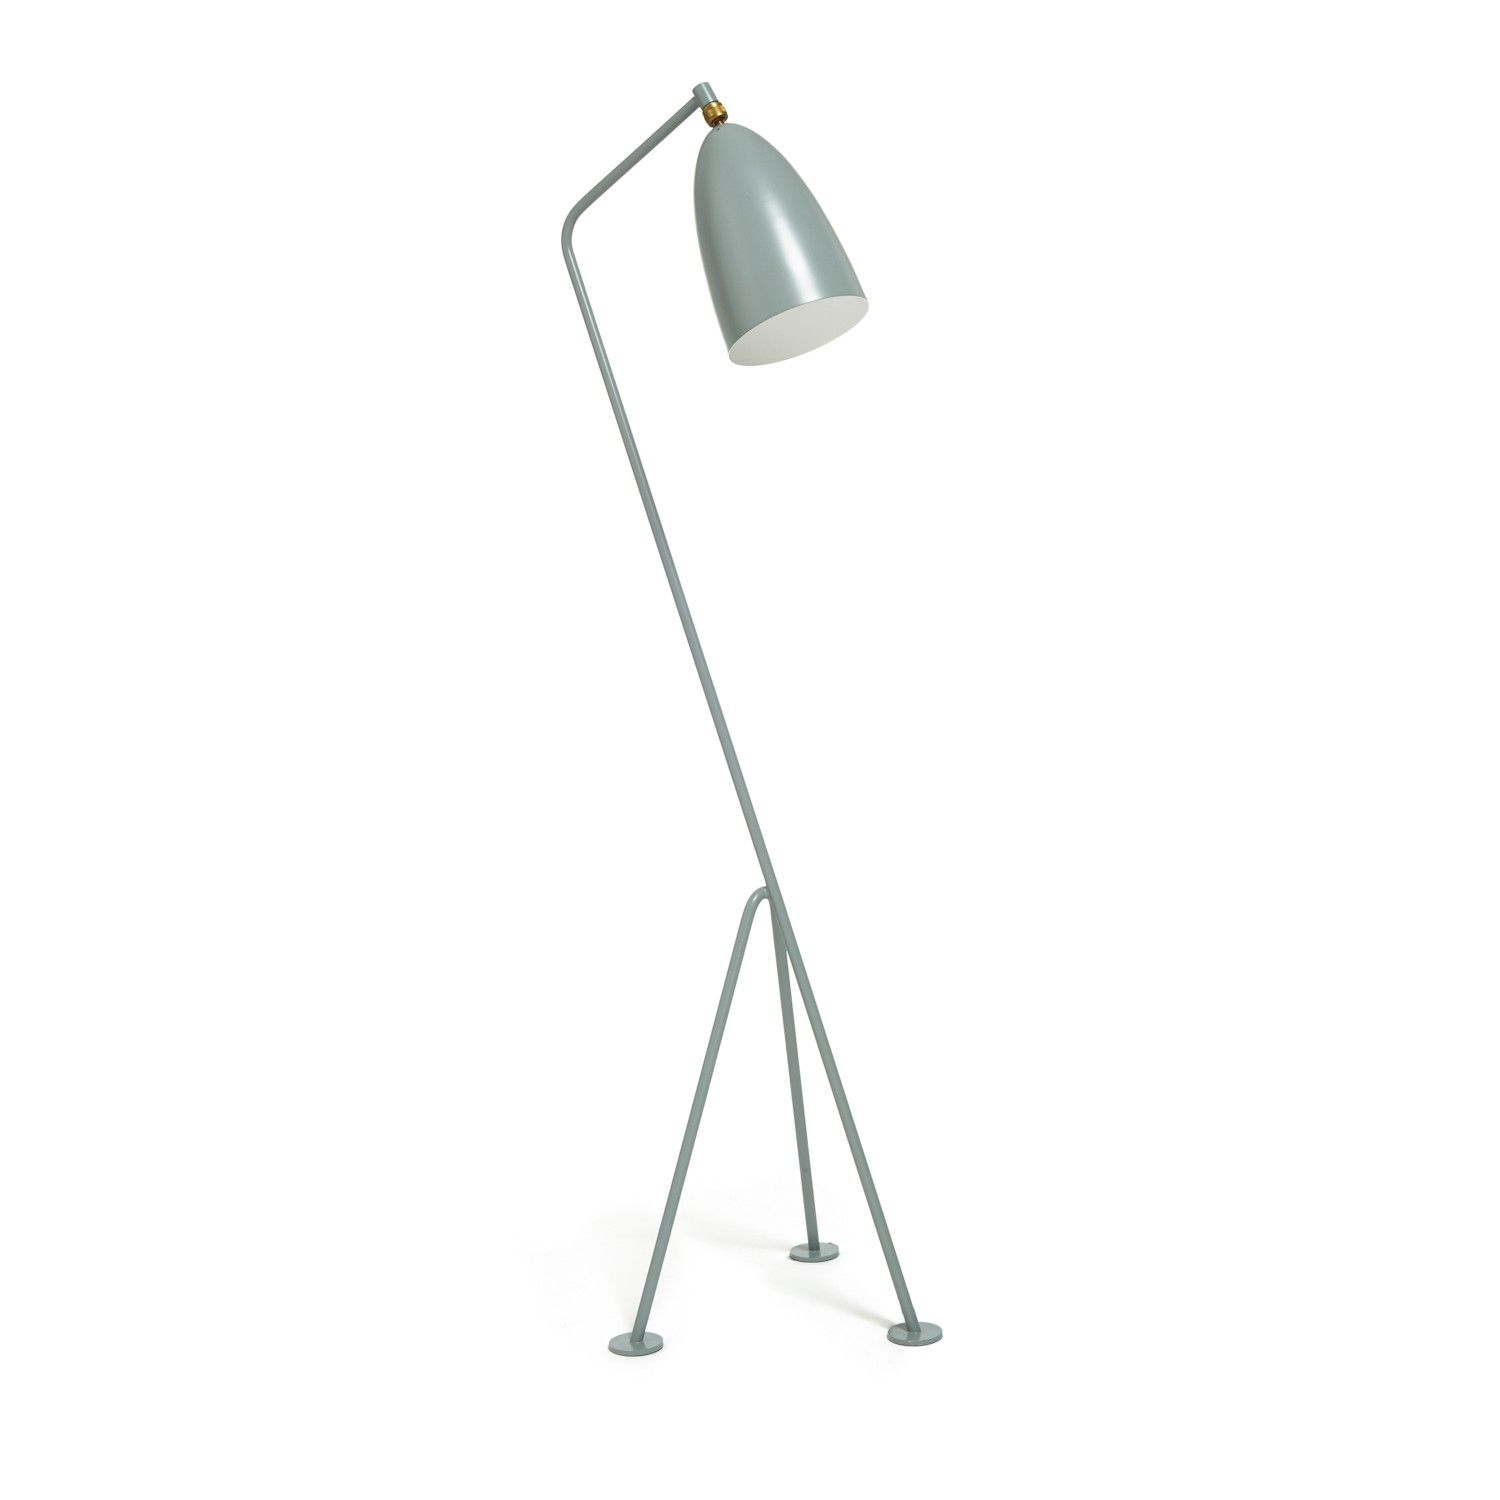 image floors floor lamps luxury of lamp architectural great for ideas images design